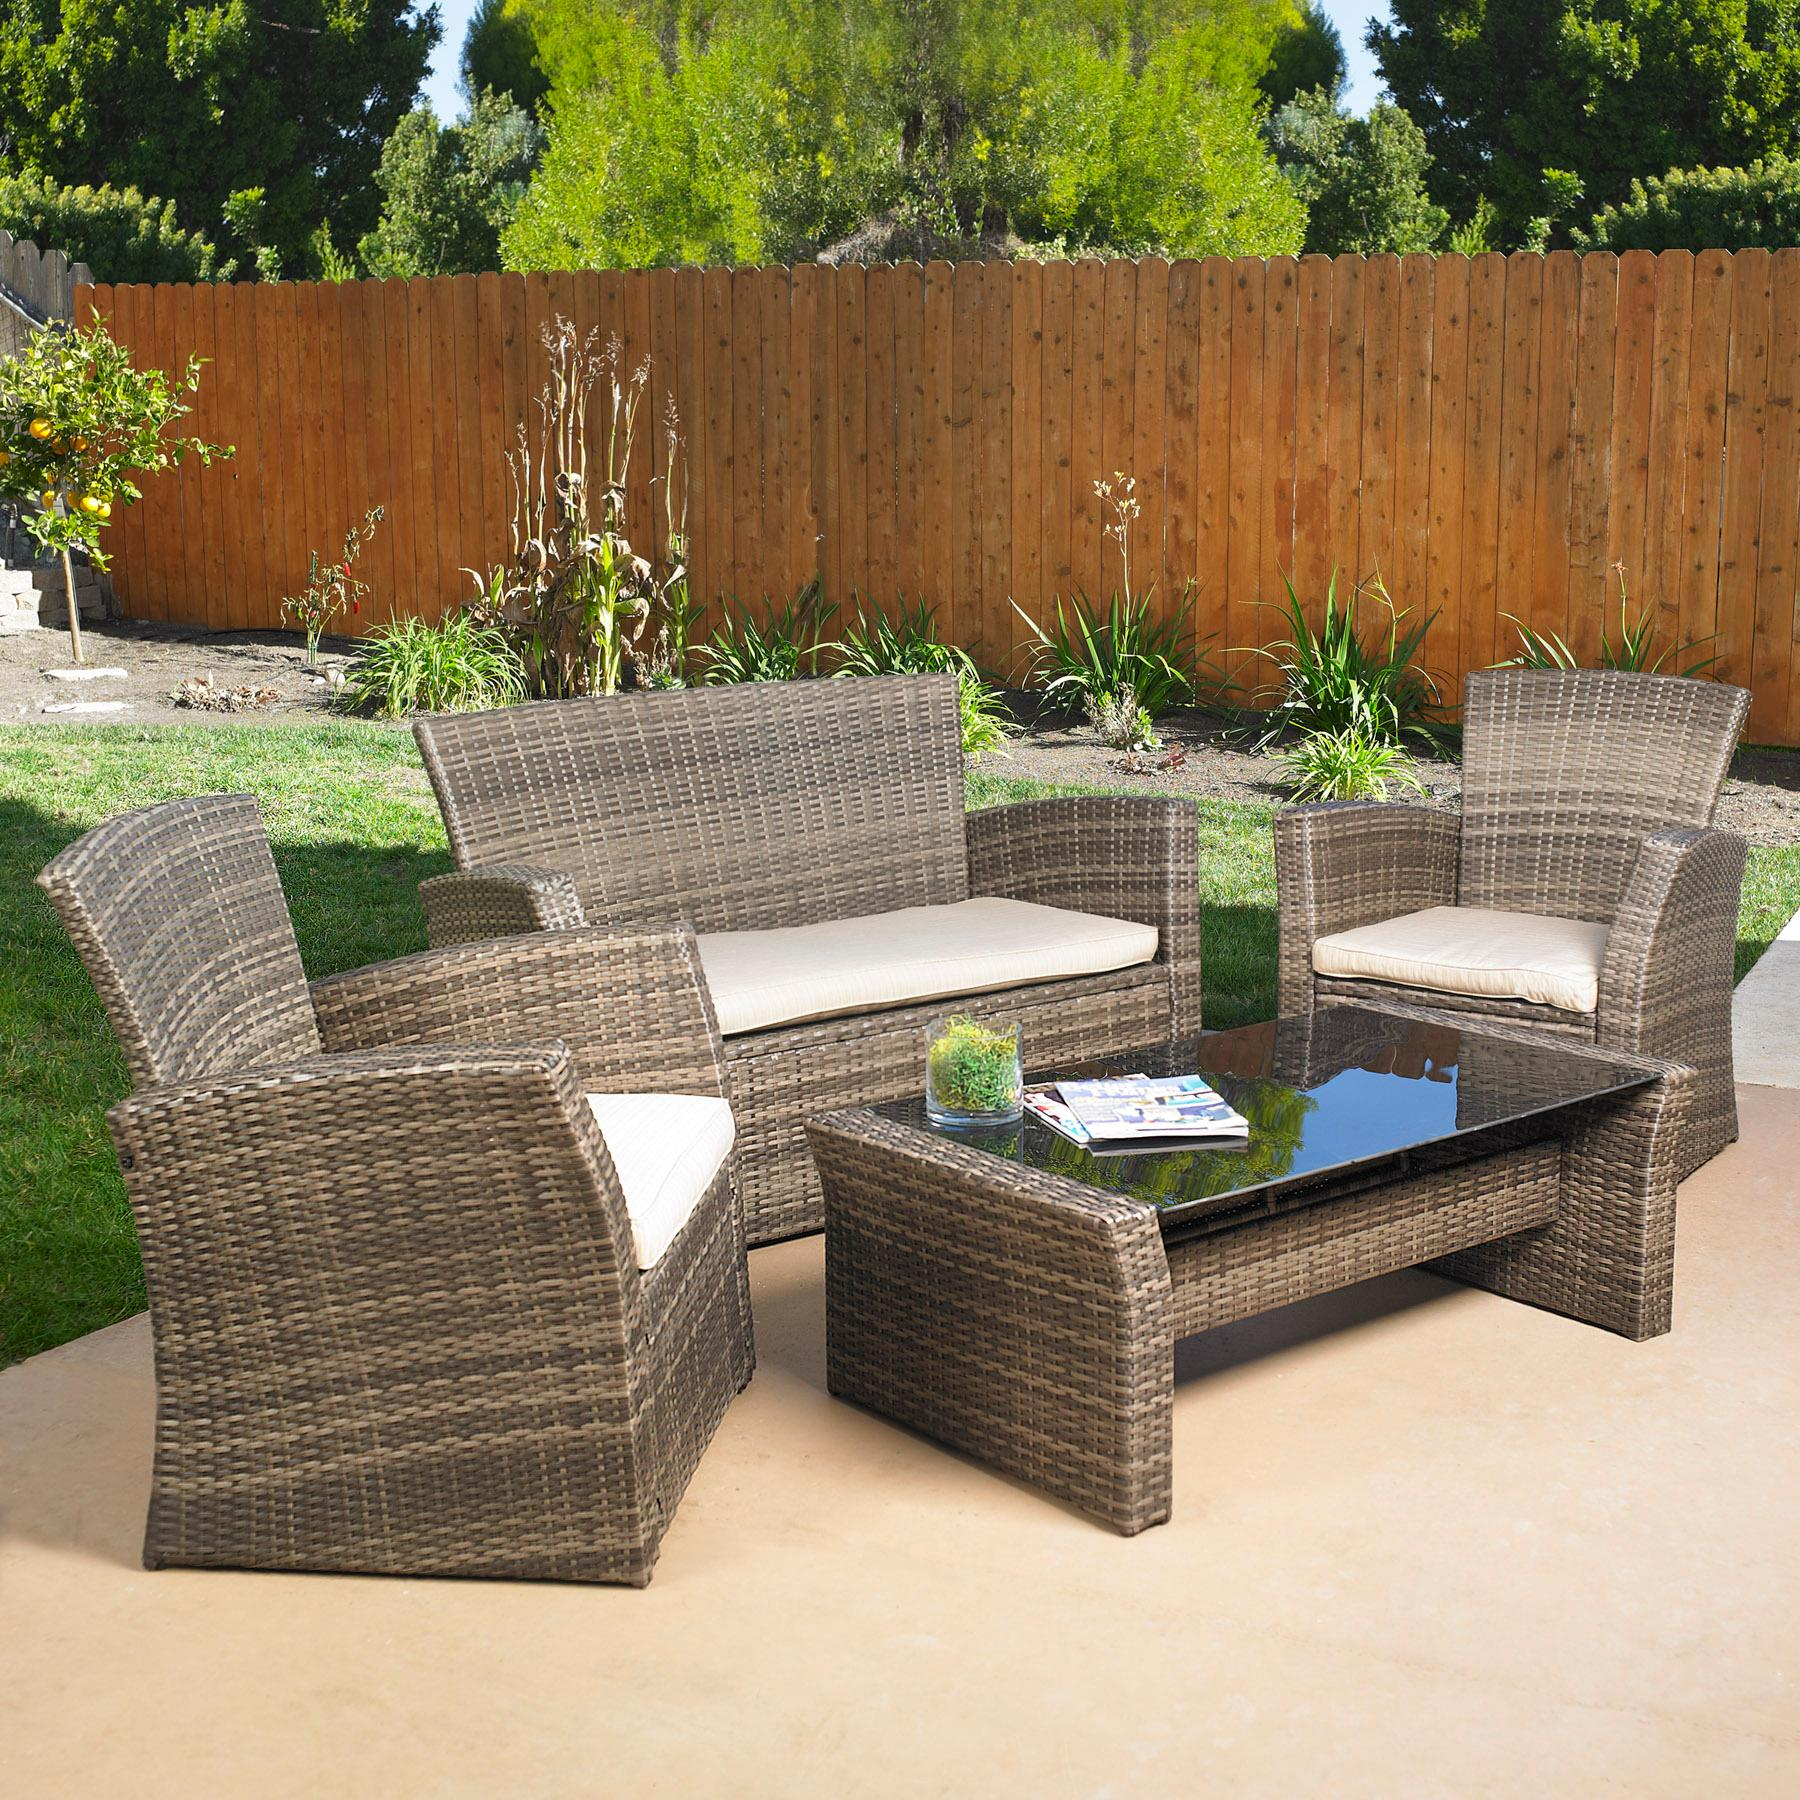 Amazon Mission Hills Redondo 4 Piece Sunbrella Seating Set